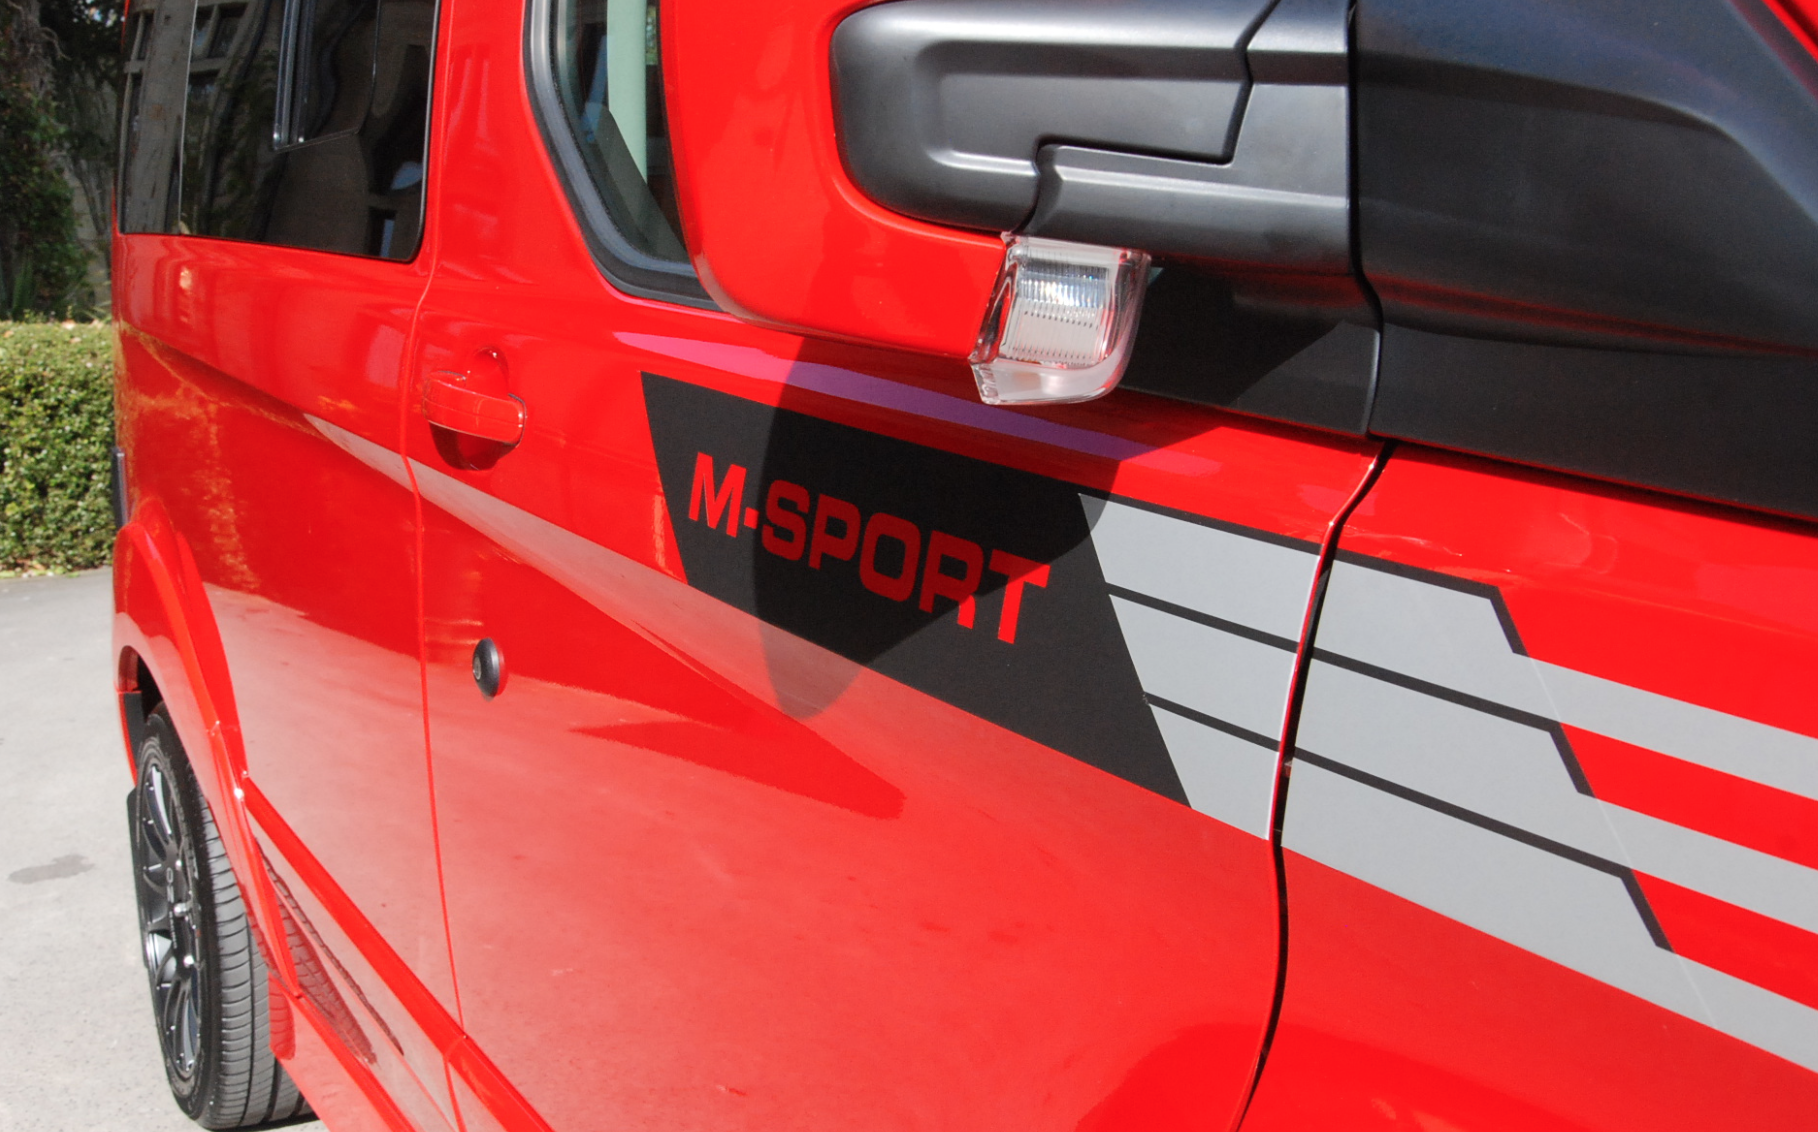 Ford Terrier M Sport - Red side